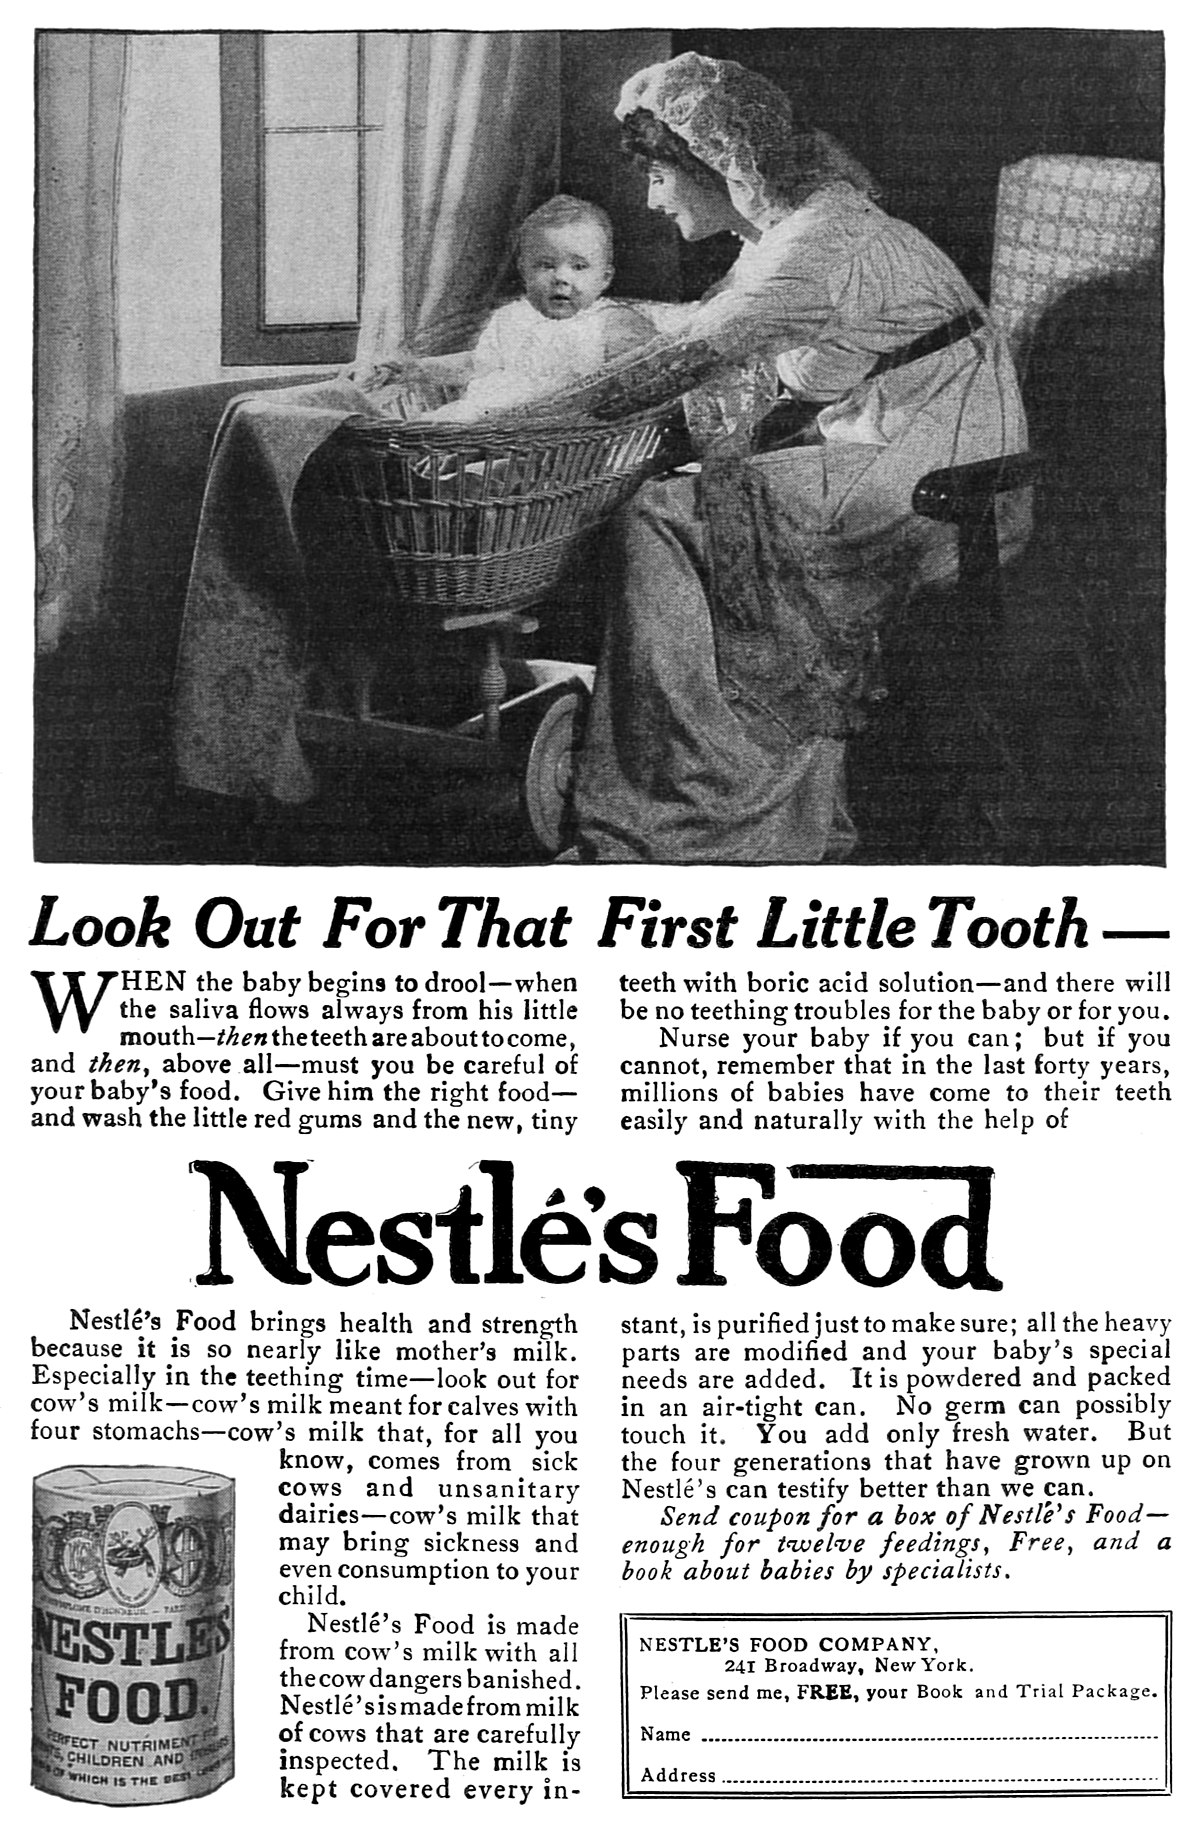 Nestlé Food advertisement, 1915.jpg